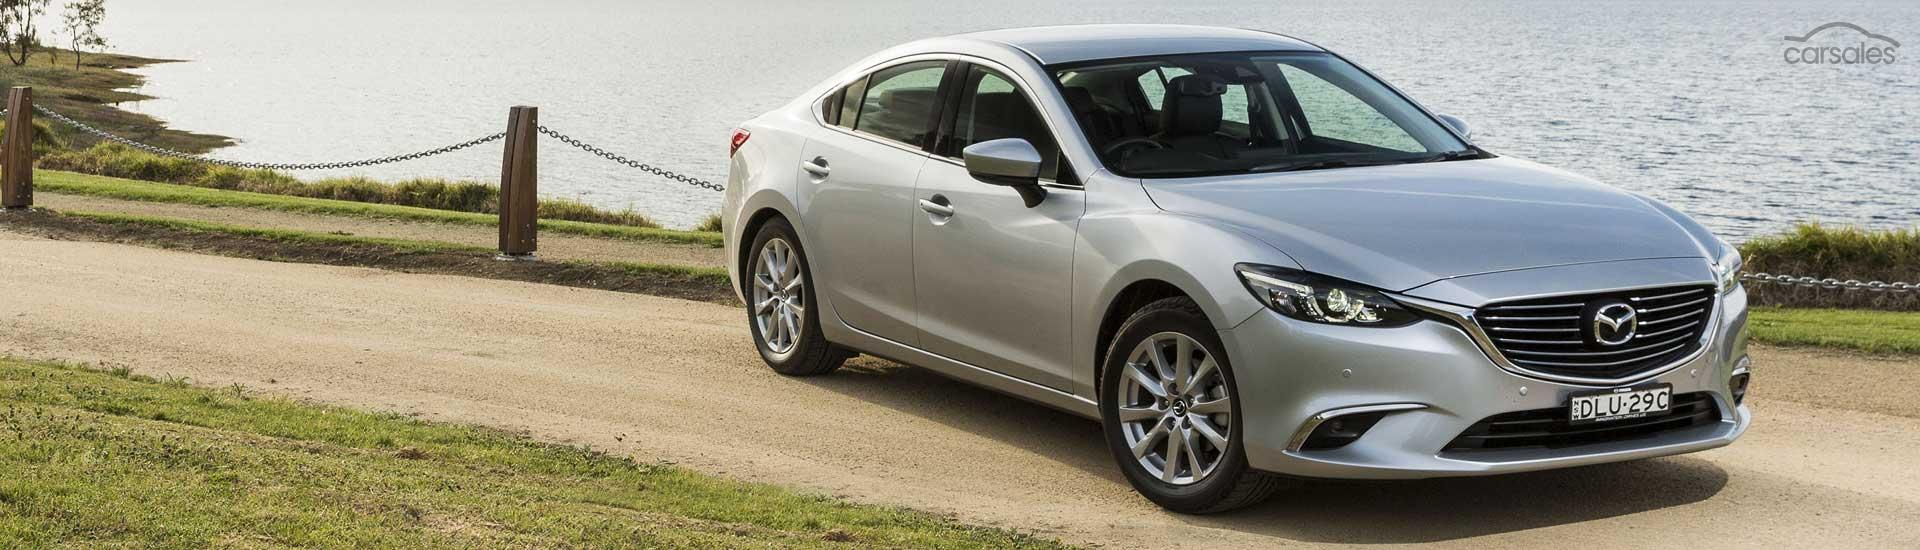 the mazda 6 wins best family car over 30k in the carsales car of